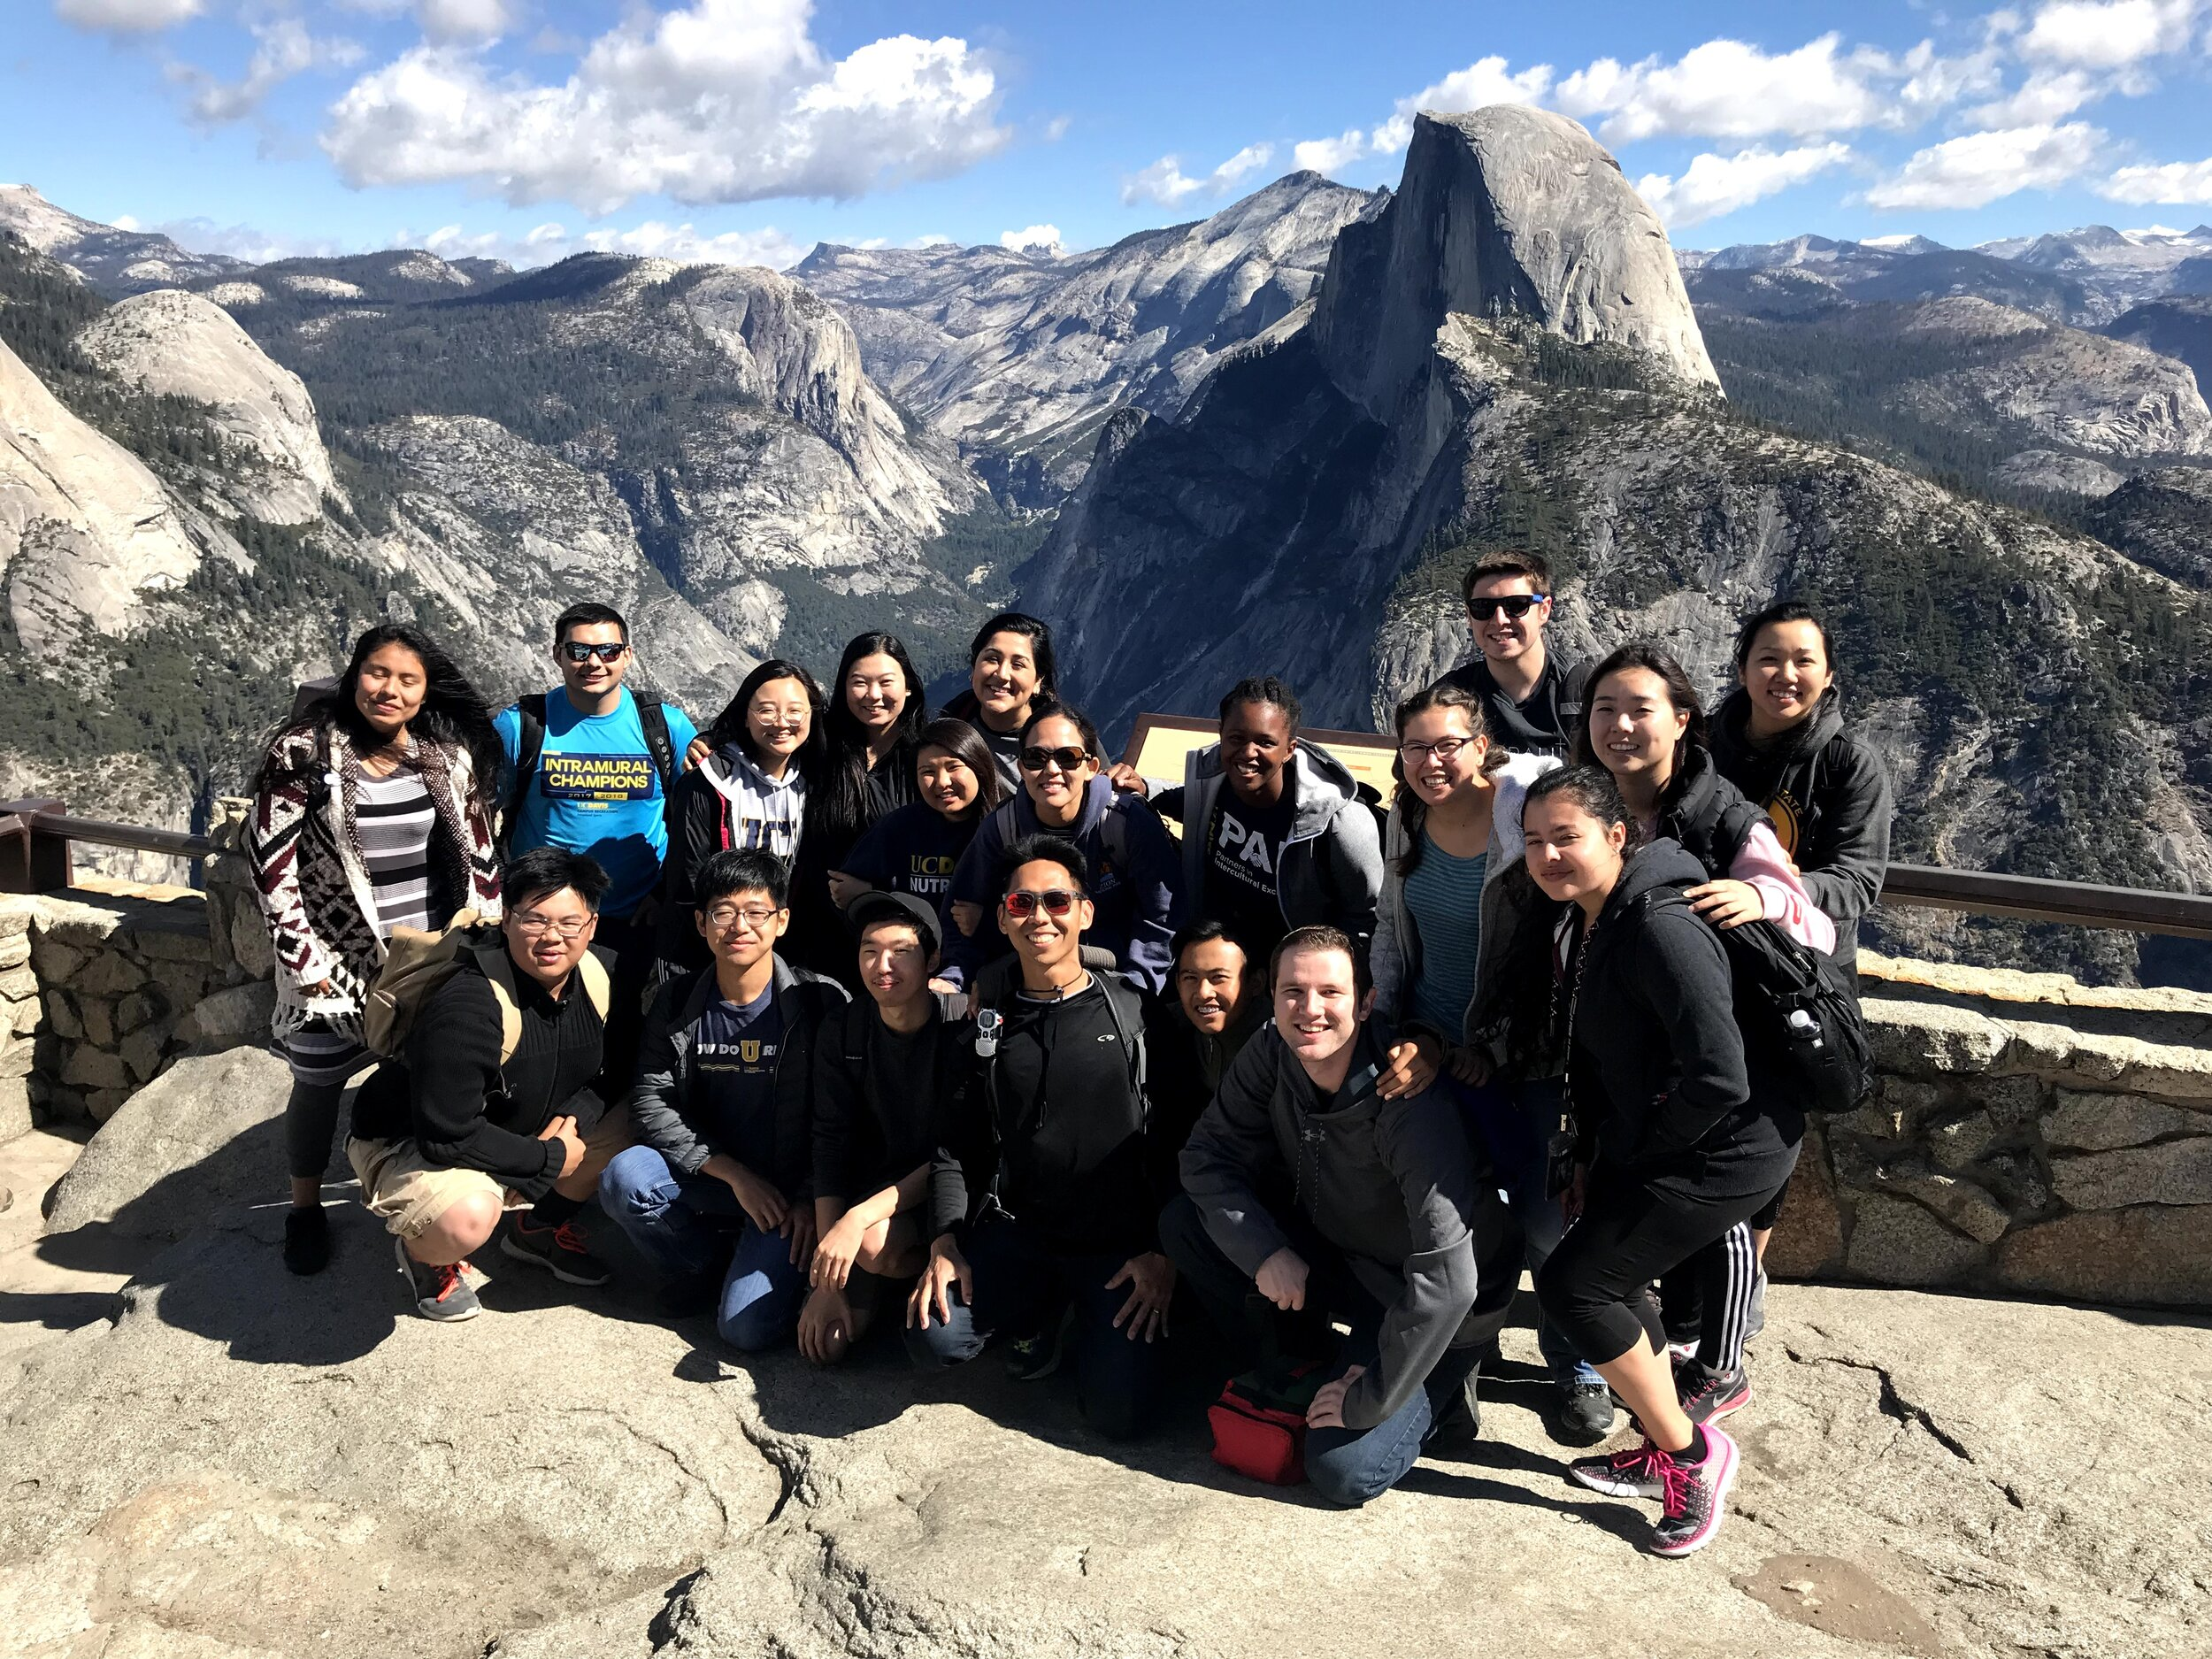 Life Group : Trips to Yosemite, Tahoe? Yes. Eating good food? Yes. Doing life together? YES